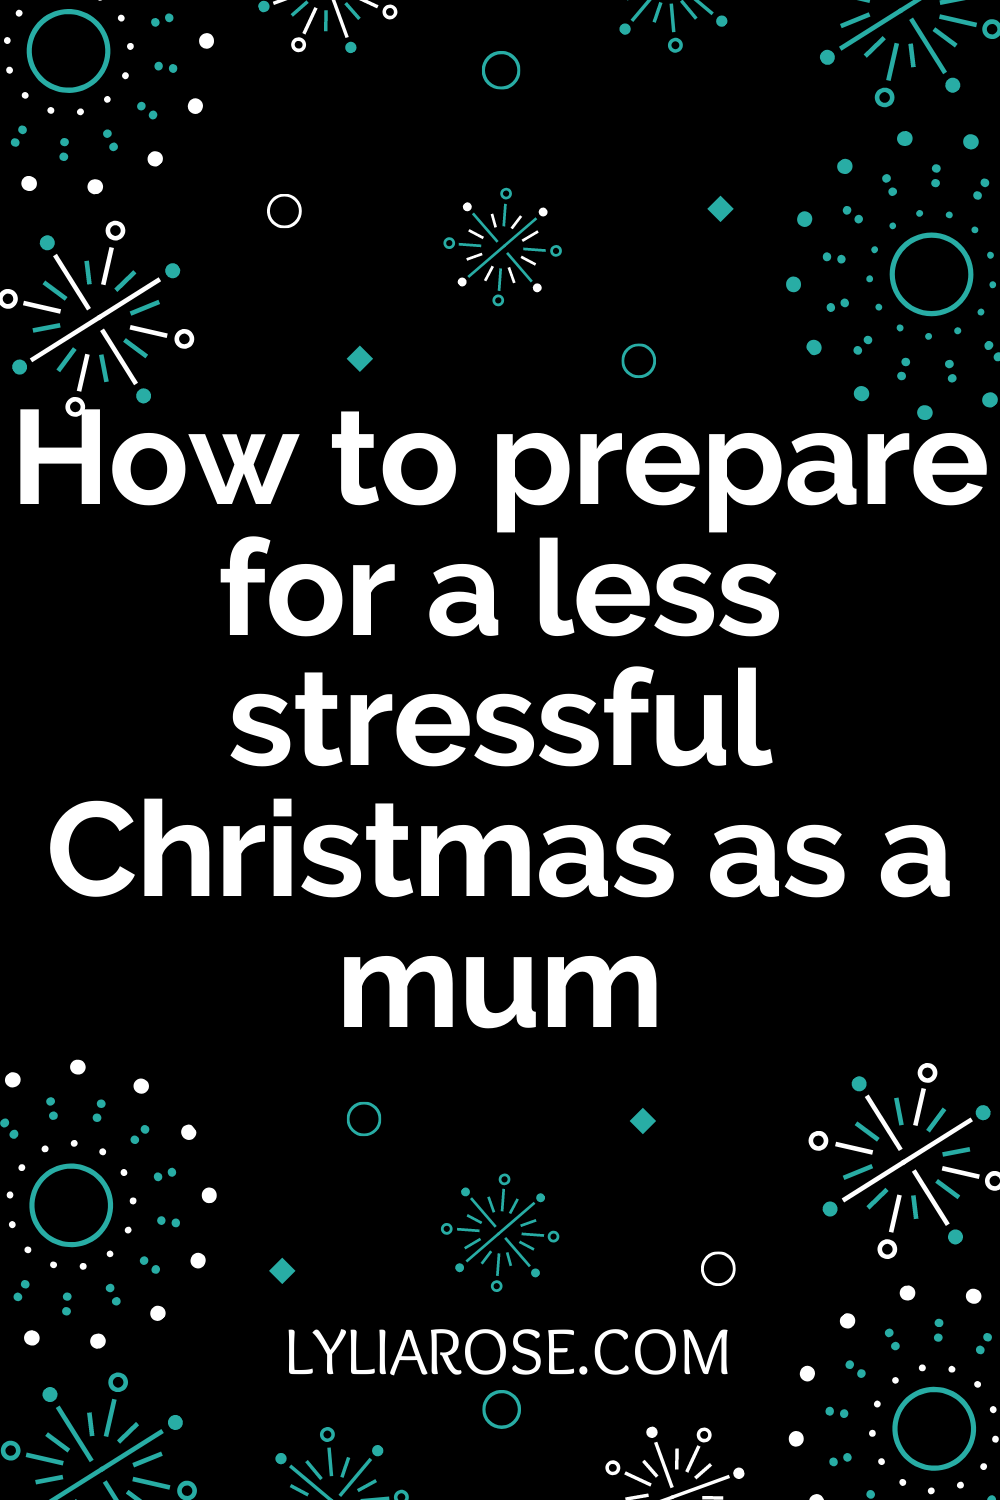 How to prepare for a less stressful Christmas as a mum (1)